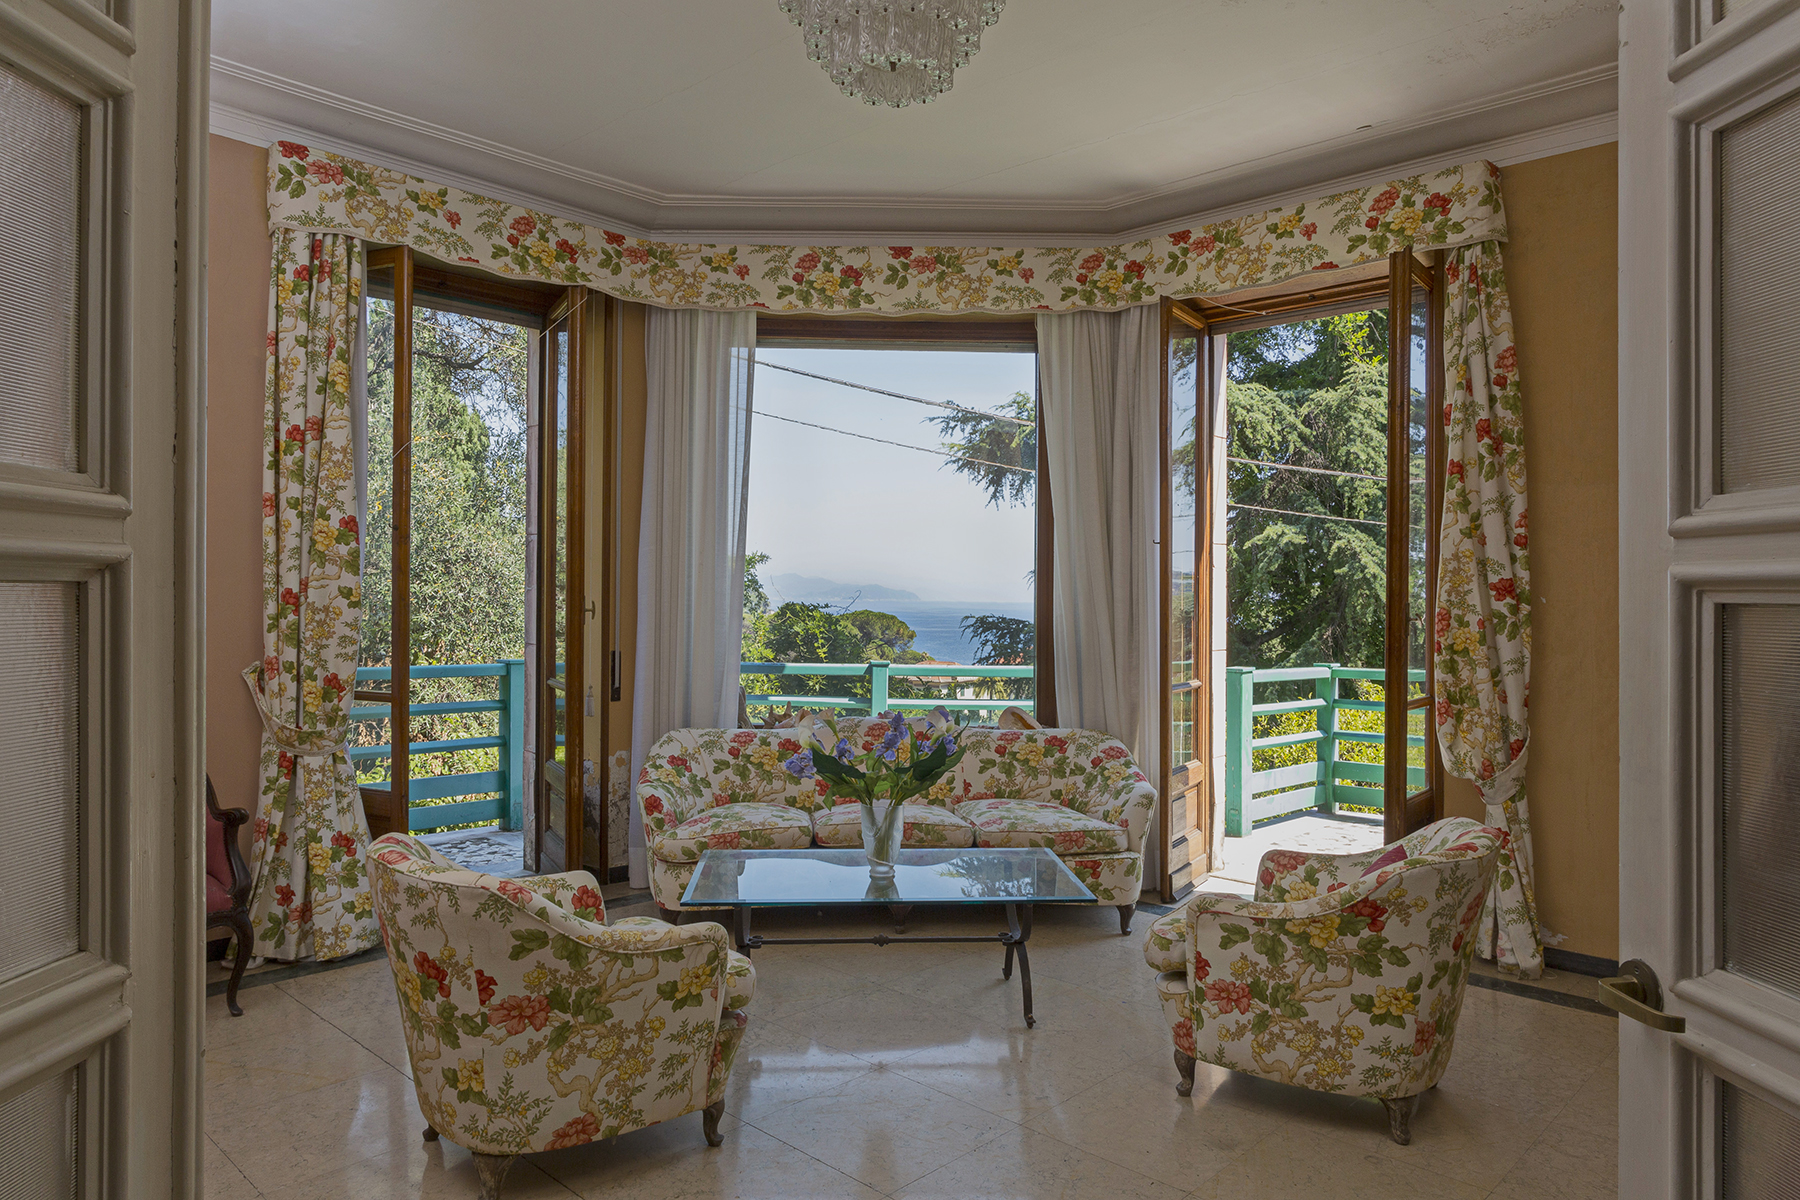 Single Family Home for Sale at Exquisite villa with private garden and amazing sea view Santa Margherita Ligure, Genoa Italy